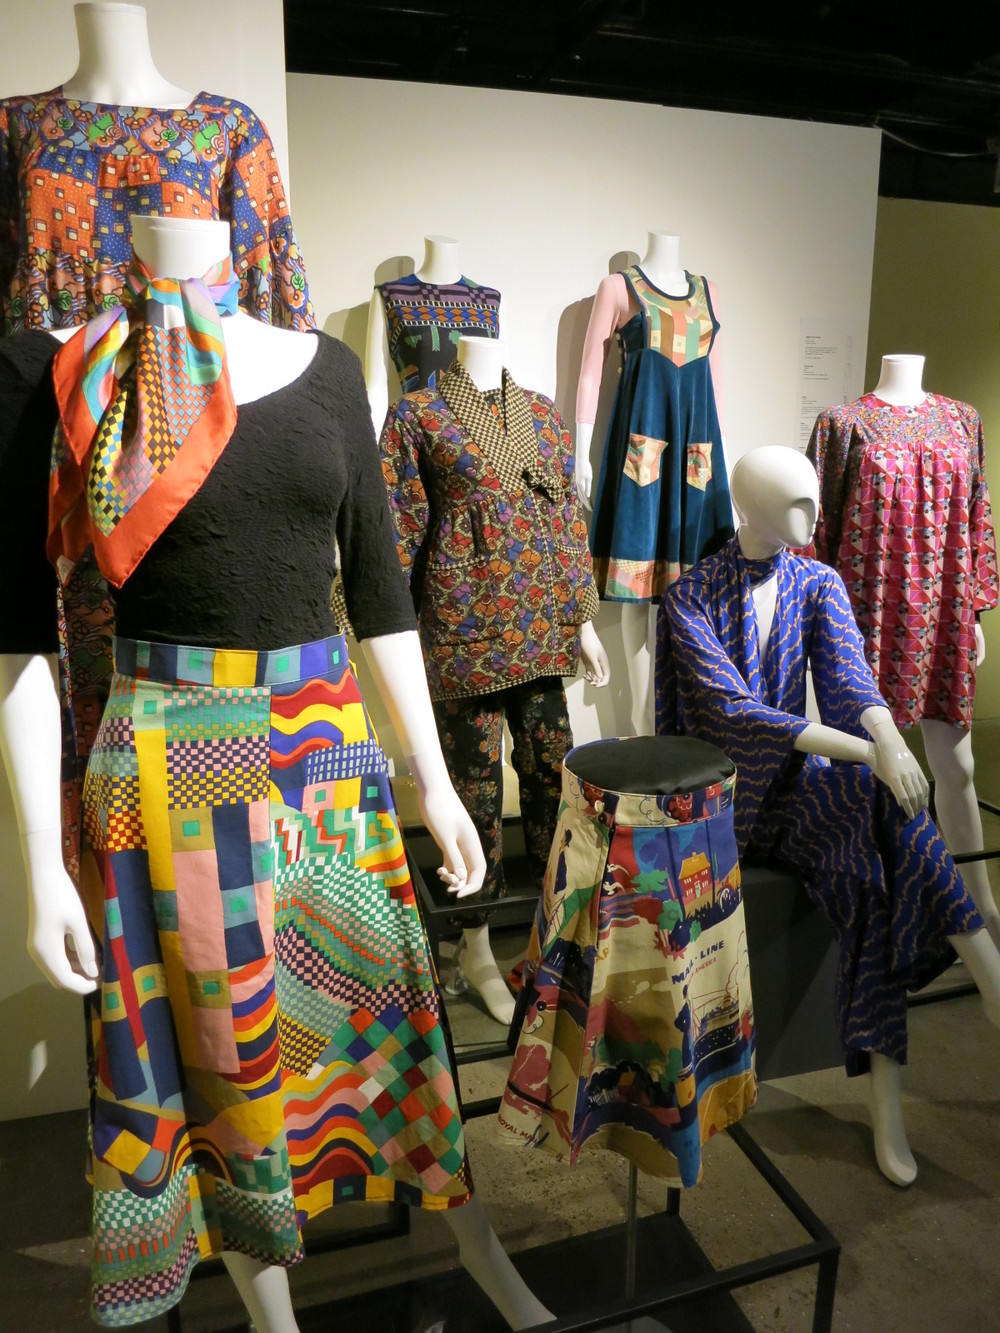 Liberty in Fashion exhibition at the Fashion & Textile Museum, Bermondsey, London 2015. The prints for these 1970s garments were either designed by Richard Nevill, Susan Collier or Sarah Campbell - all design consultants for Liberty.